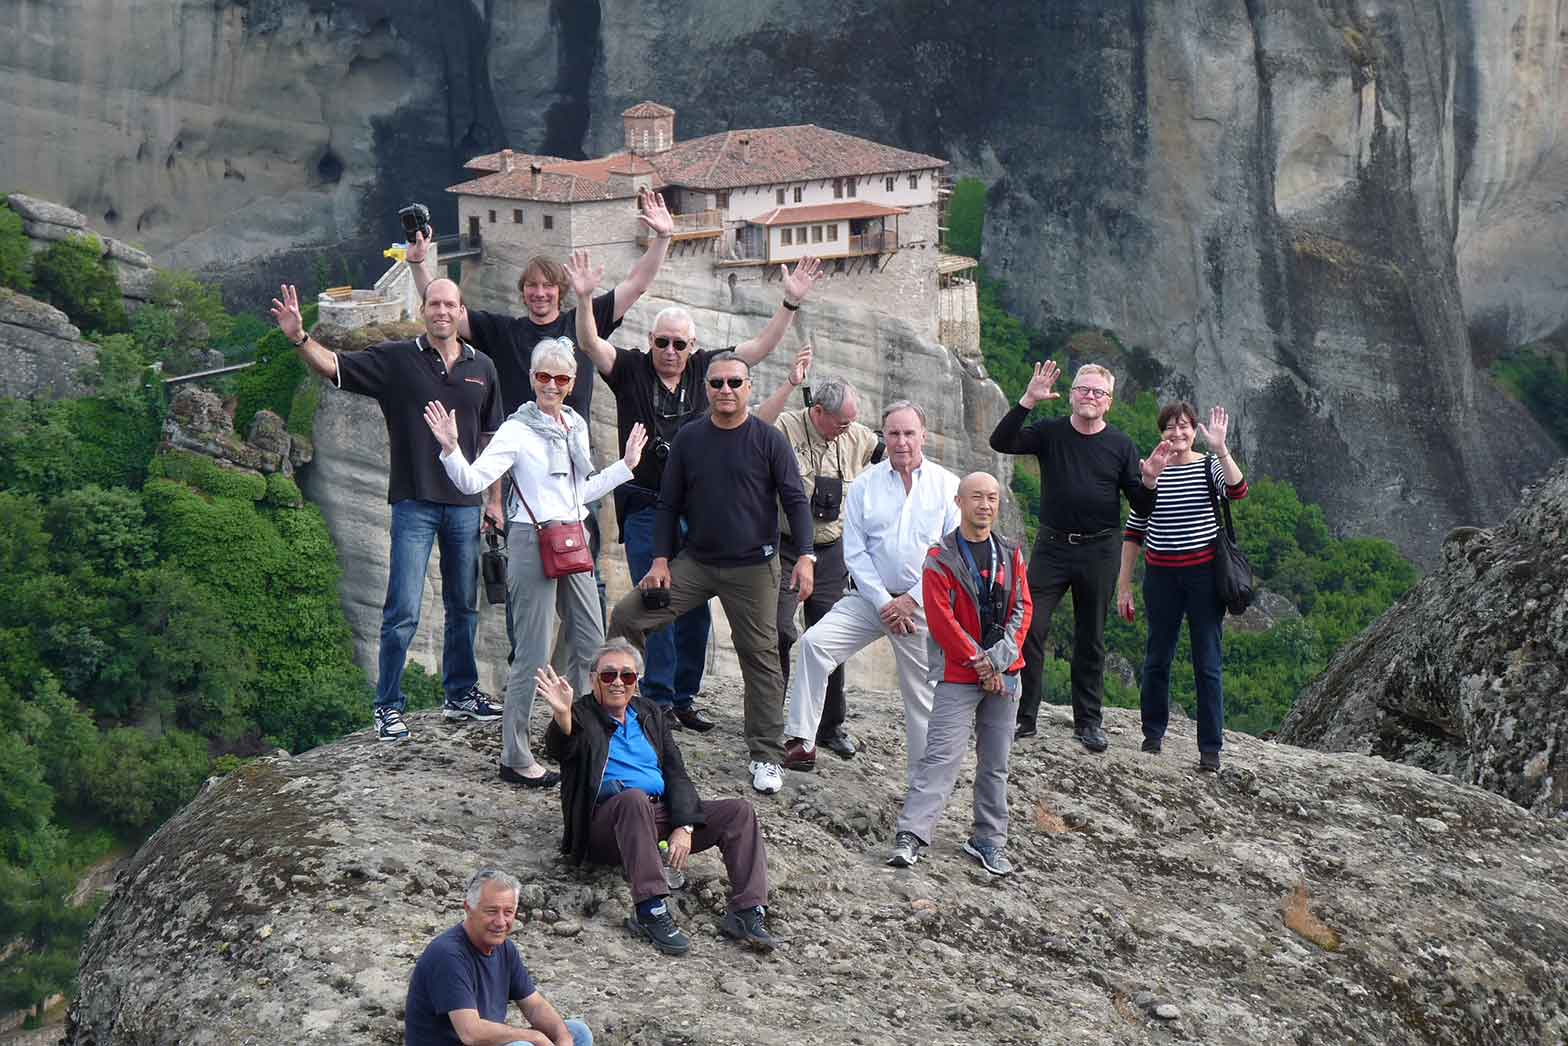 In front of Meteora monasteries